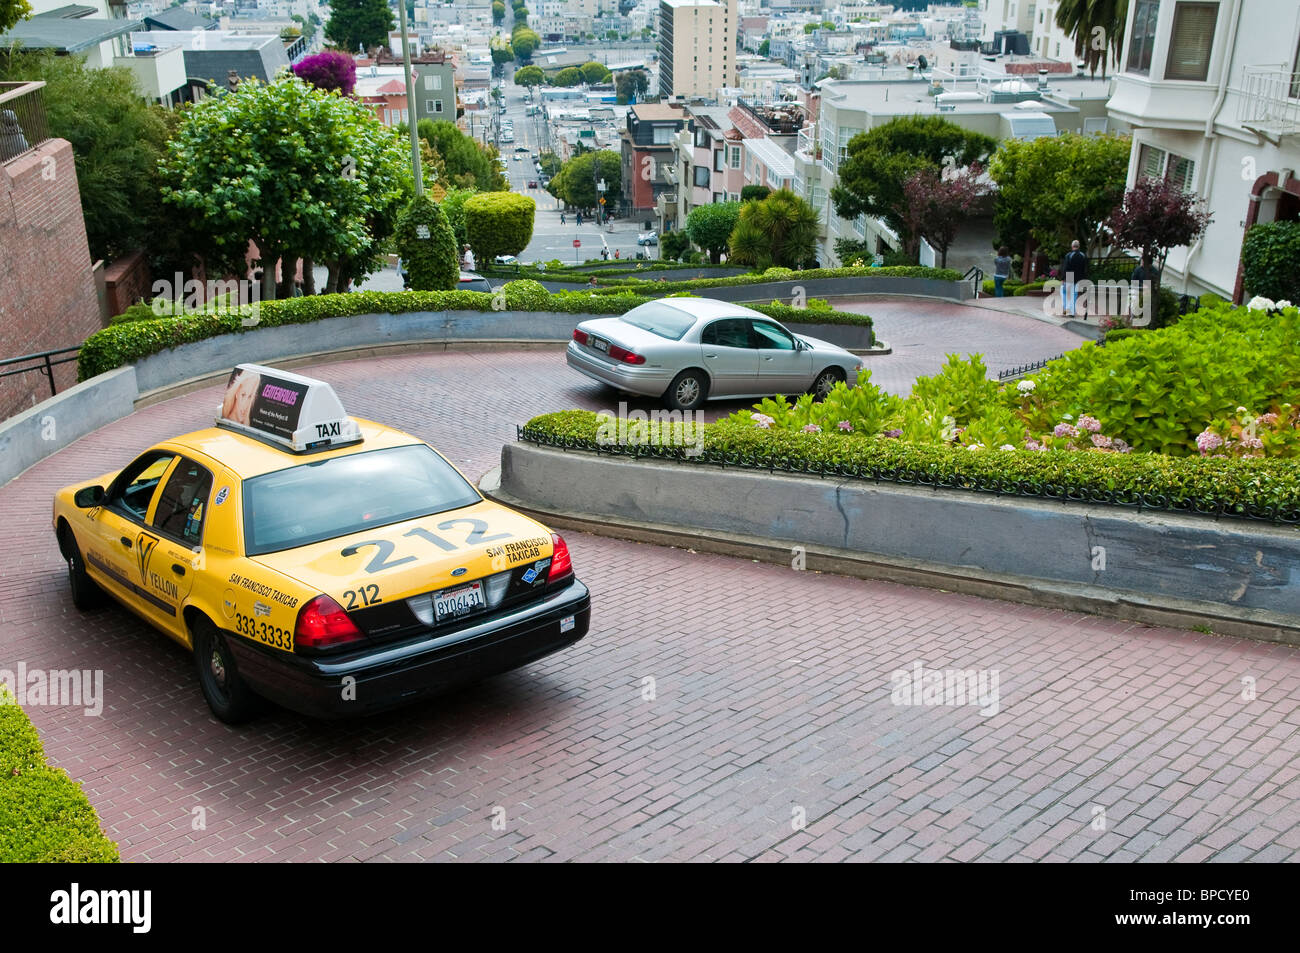 Lombard Street with yellow Taxicab, San Francisco, California, USA Stock Photo